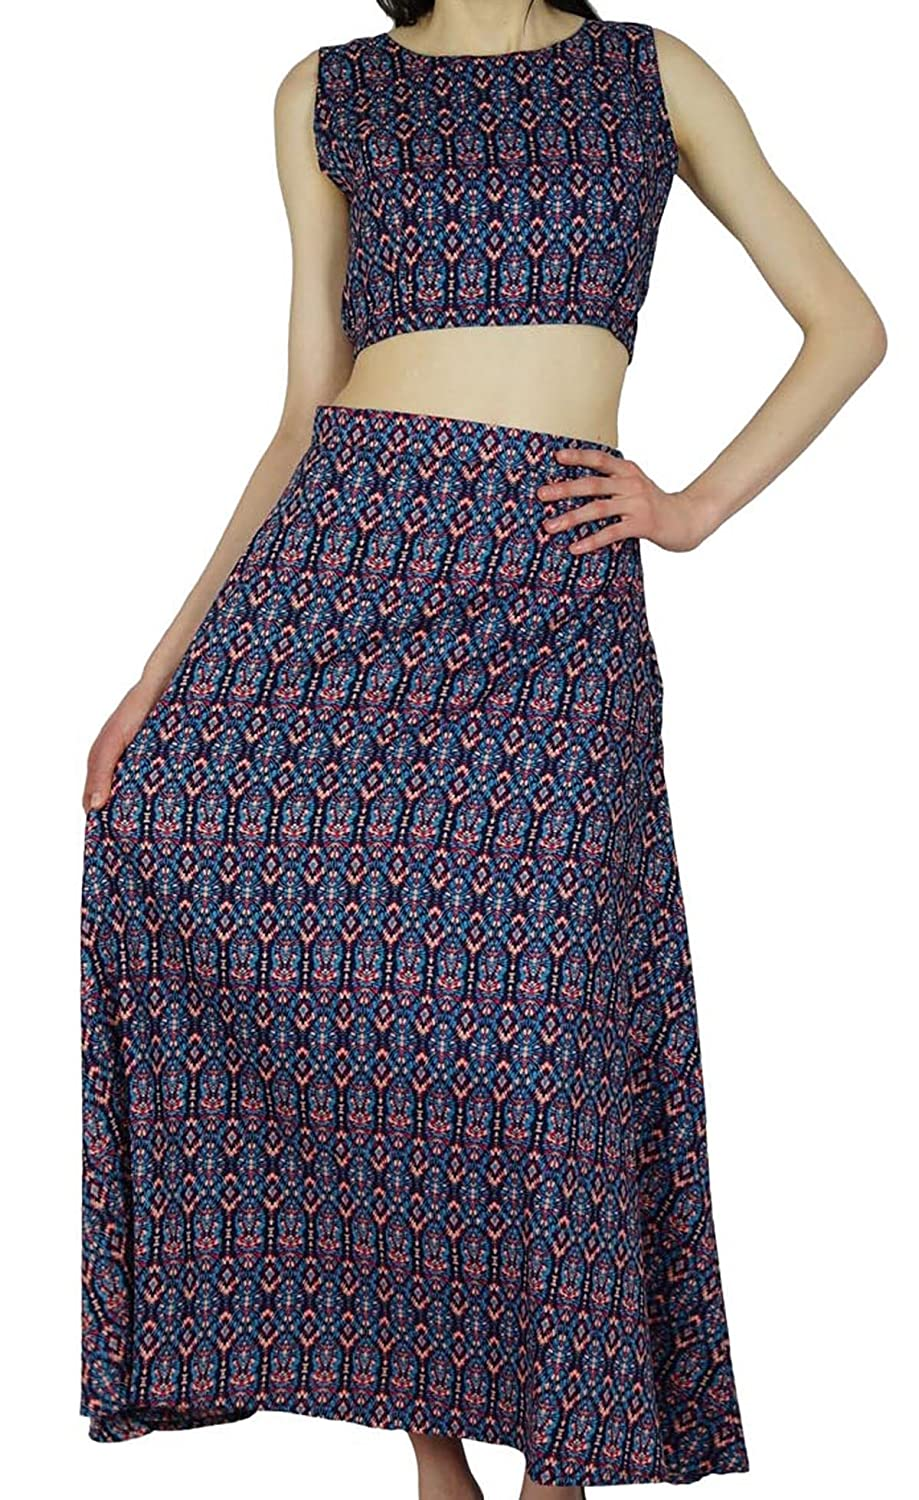 Bimba Womens Long A-Linie Rock mit Crop Top Boho Bohemian Rayon-Sommer-Kleidung